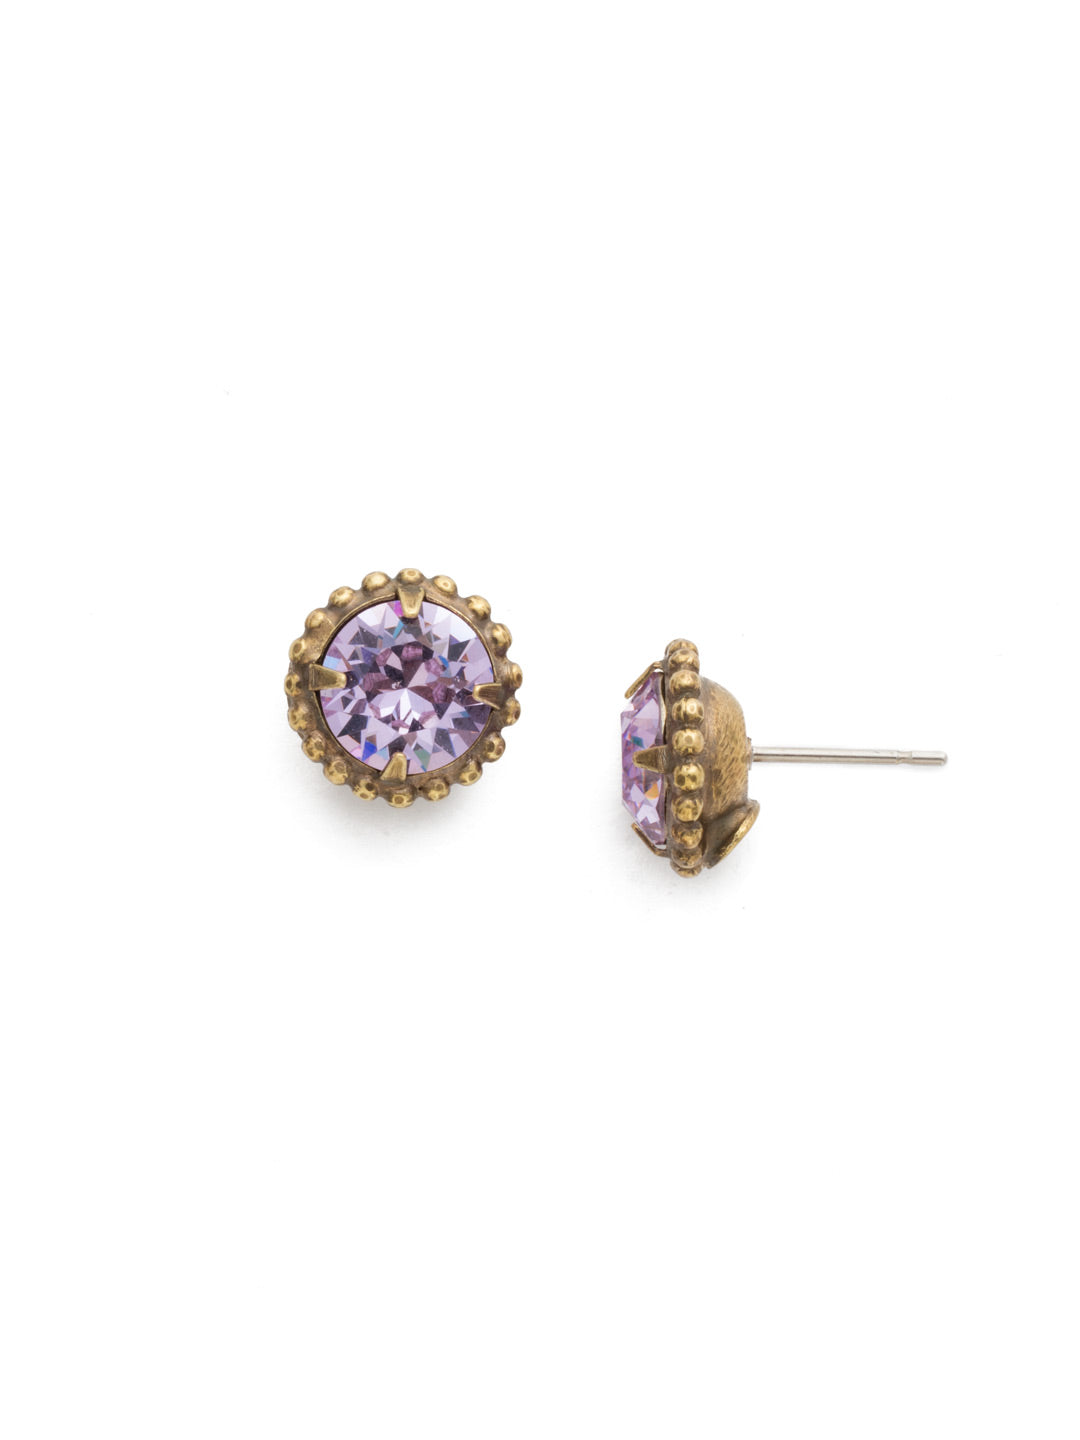 Simplicity Stud Earrings - EBY38AGVI